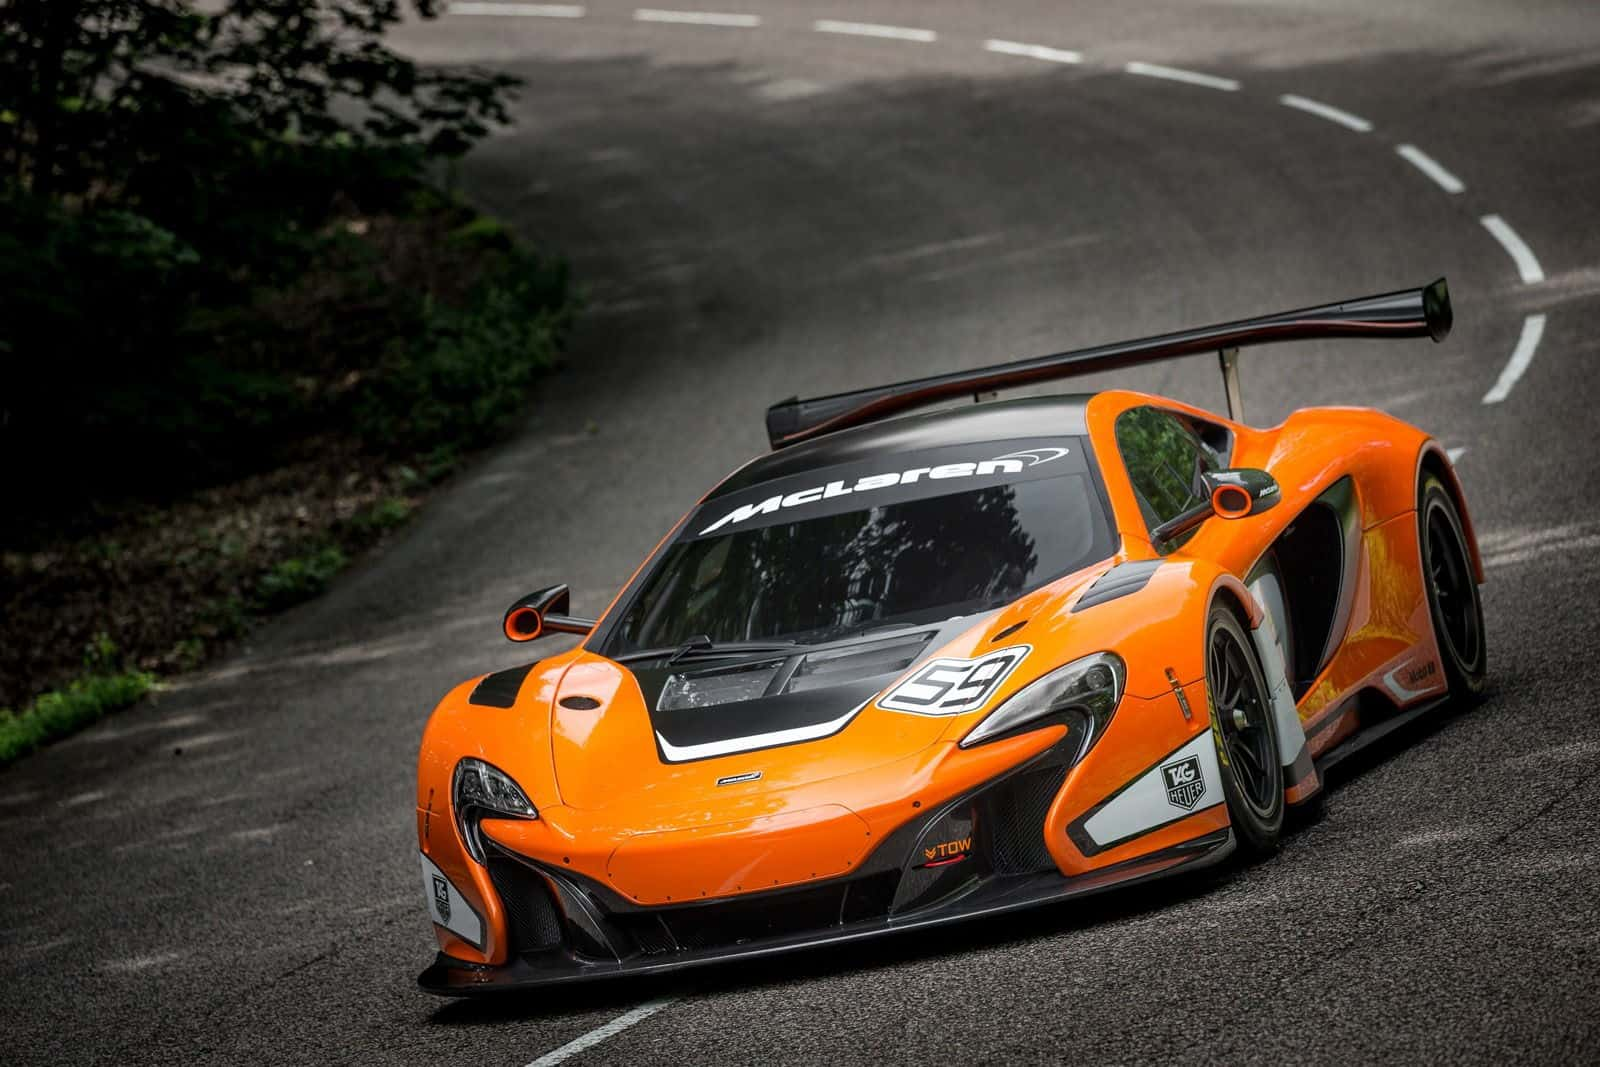 McLaren 650S GT3 Race Car - Unfinished Man